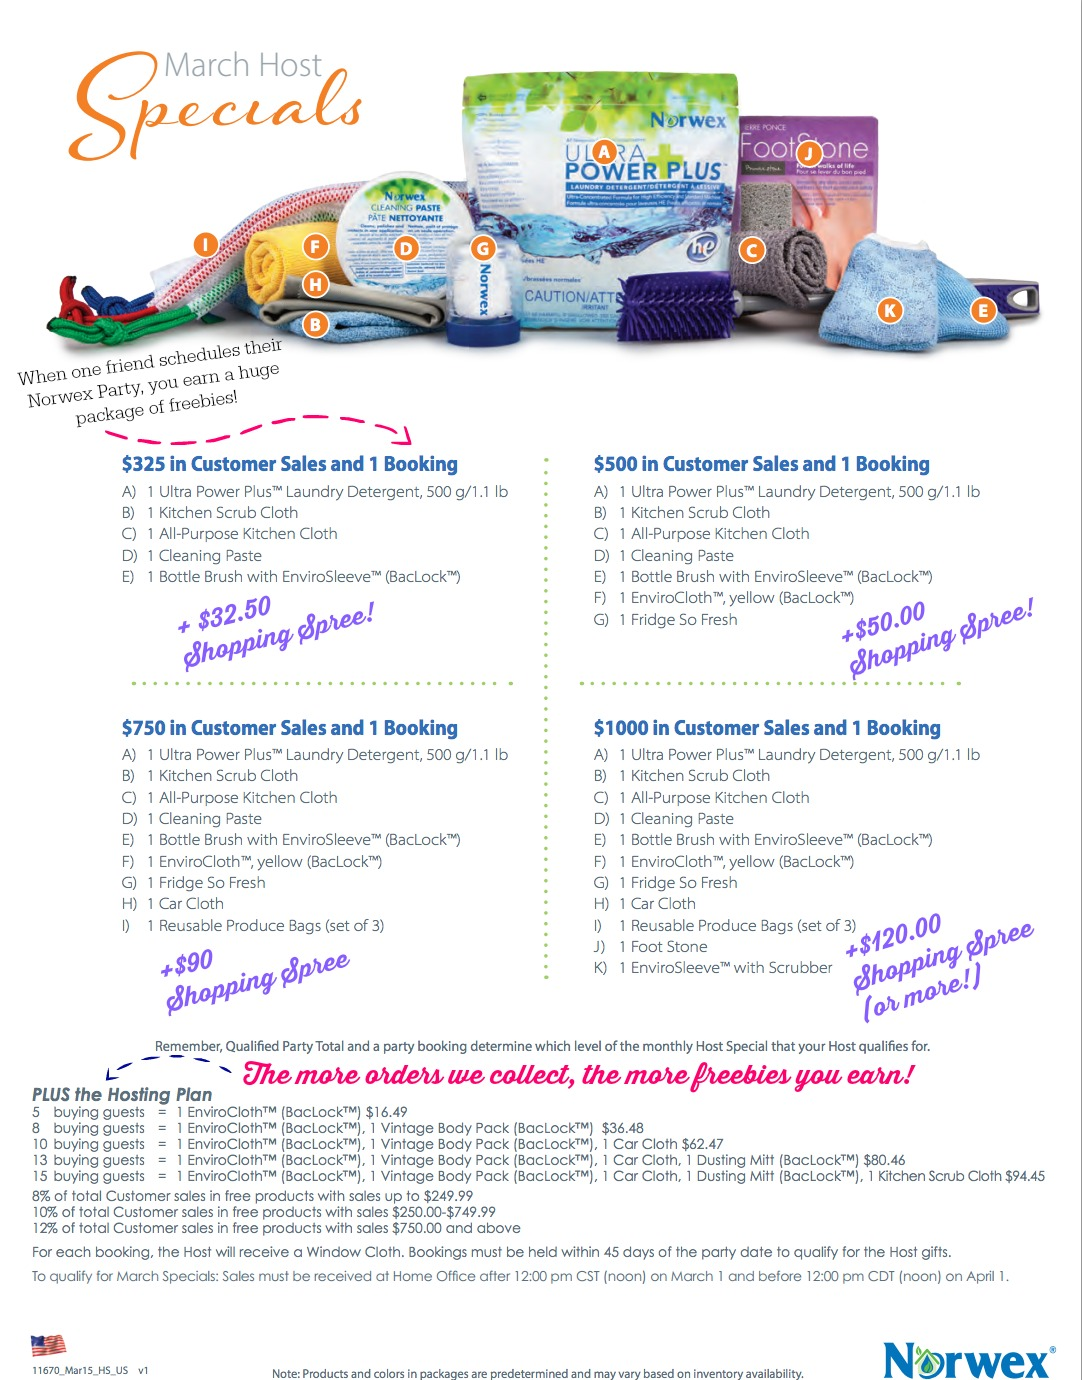 Norwex Hostess and Customer Specials for March 2015